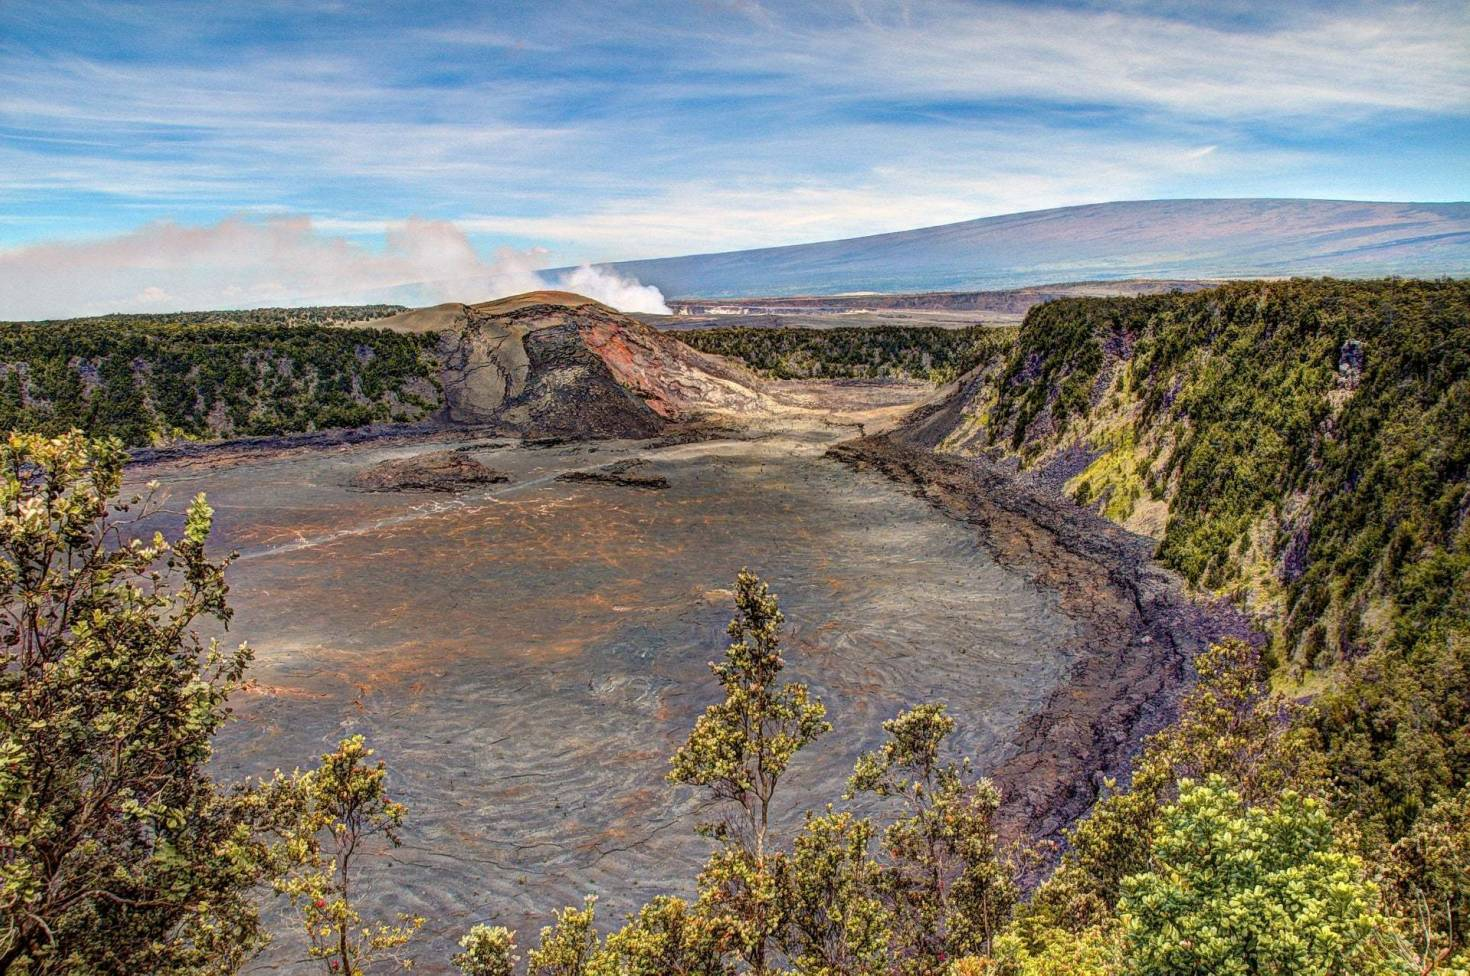 Kilauea Crater in Volcanoes National Park